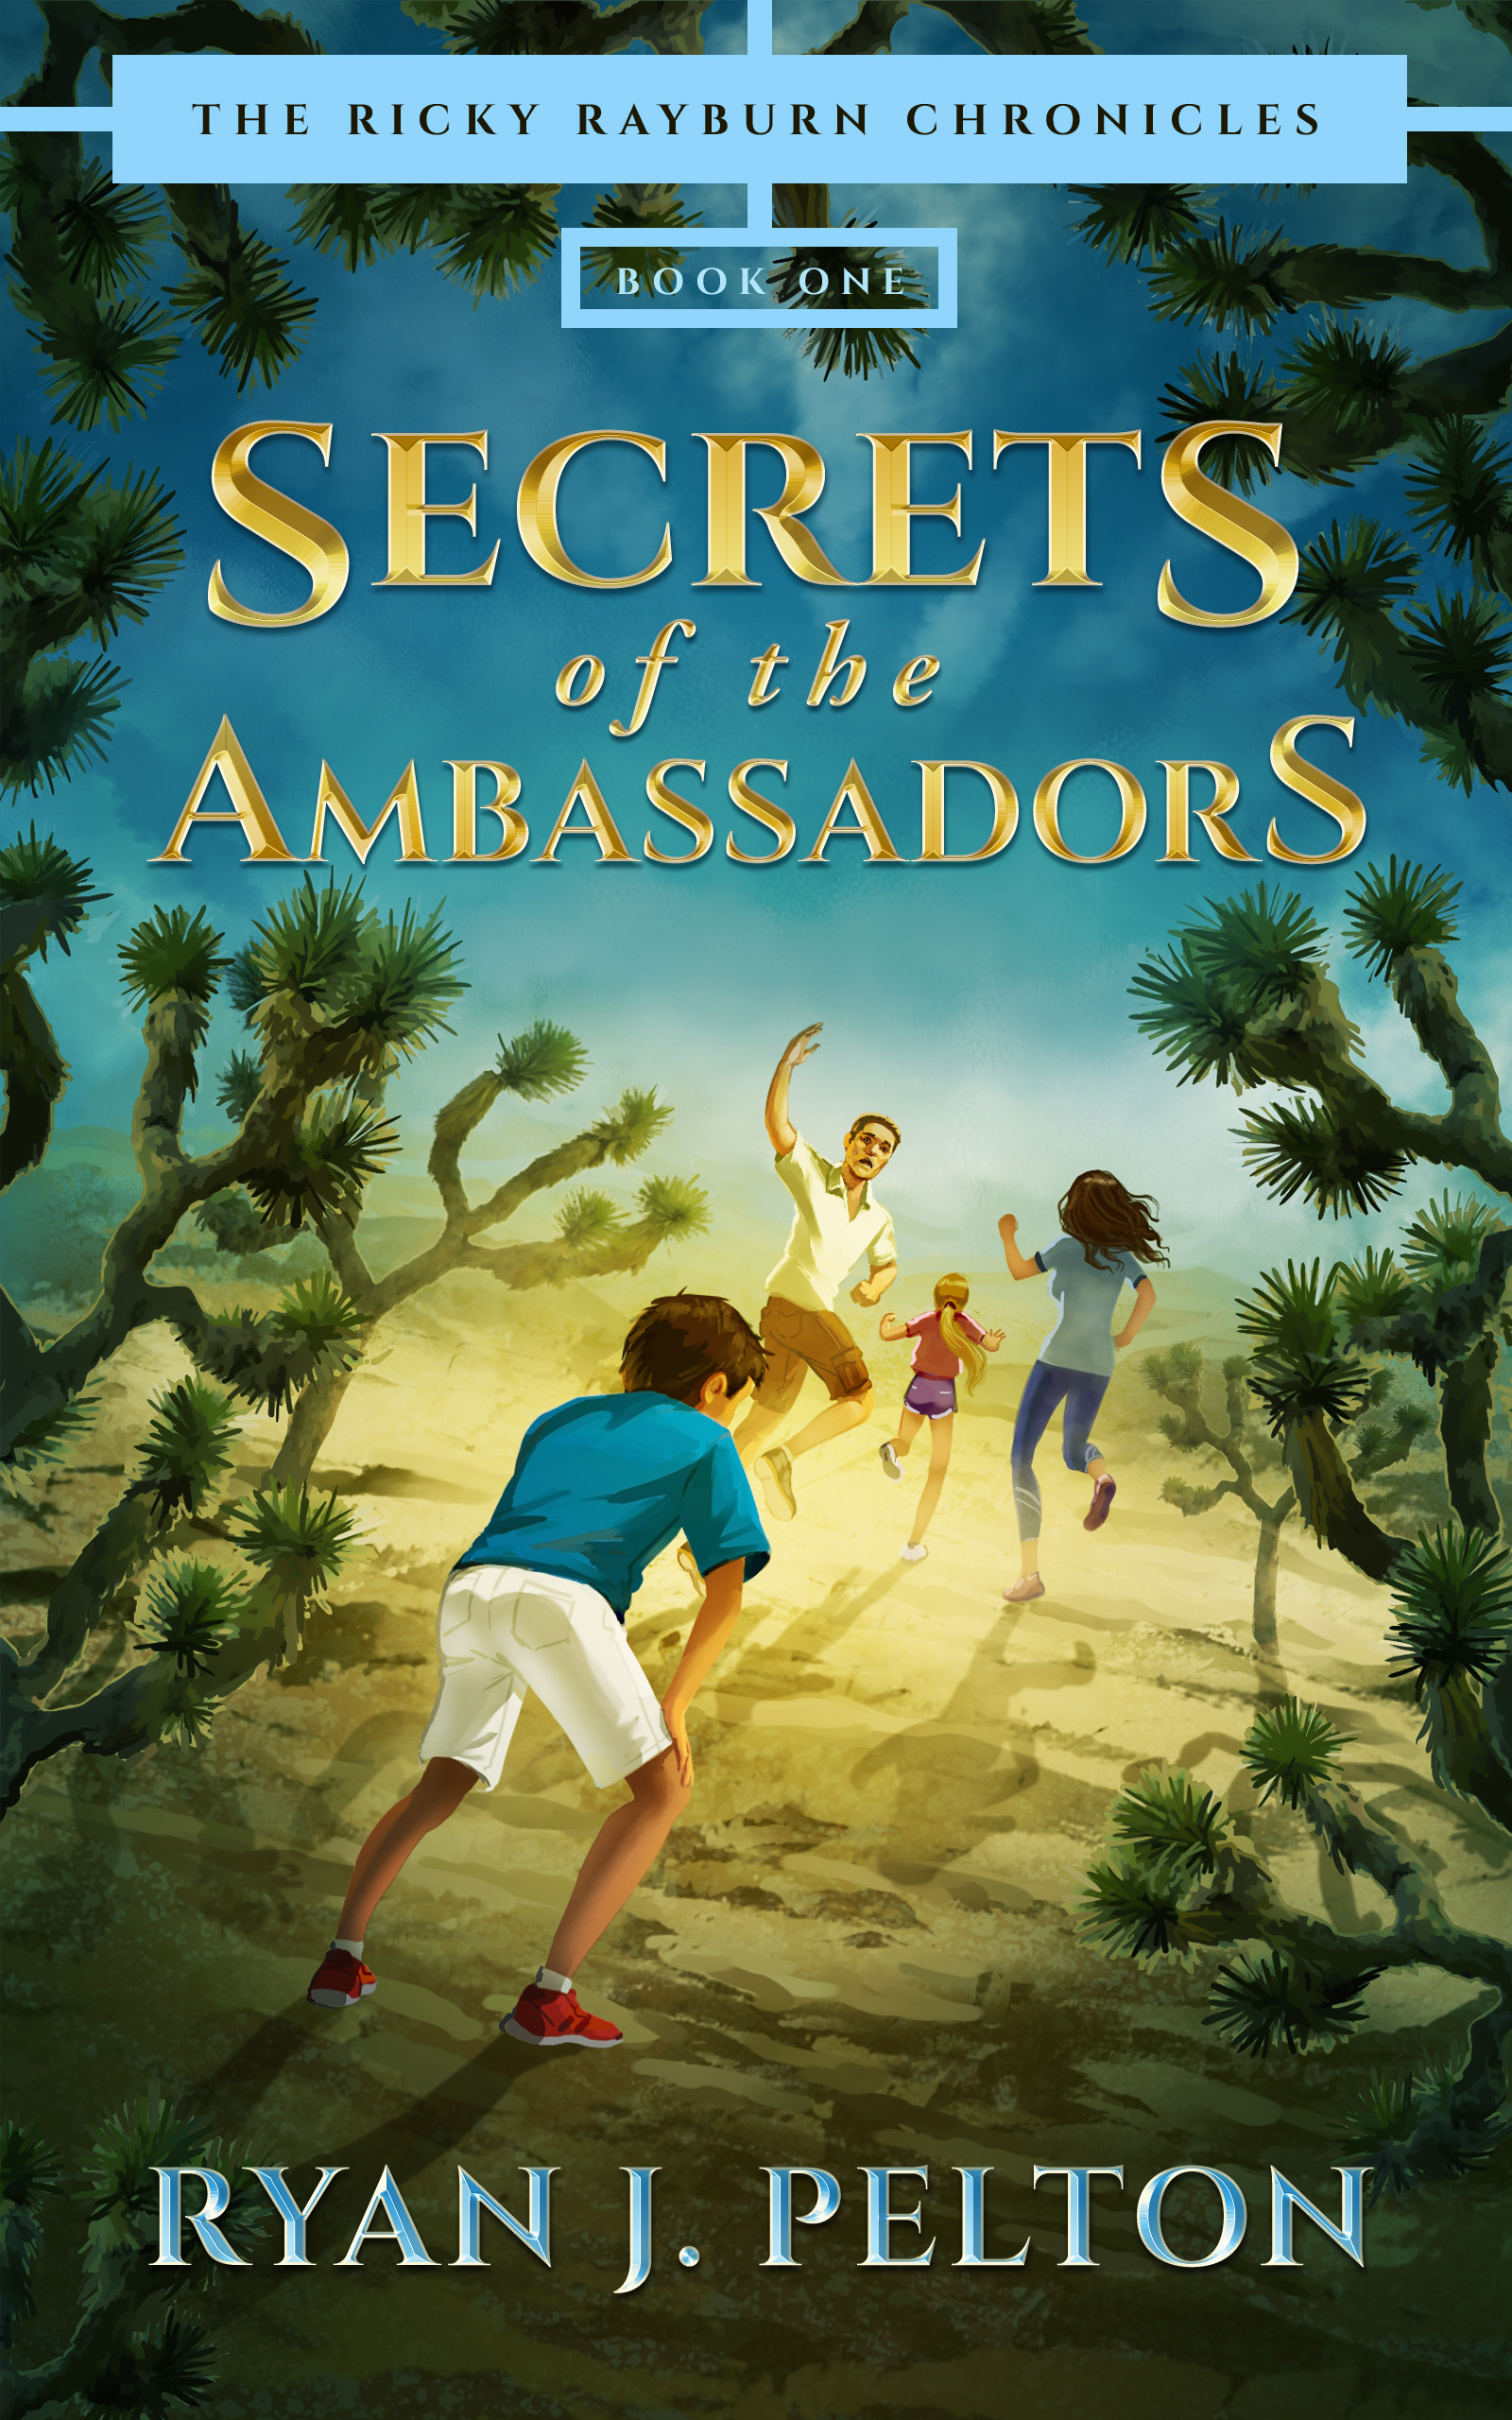 Secret of the Ambassadors 002.jpg